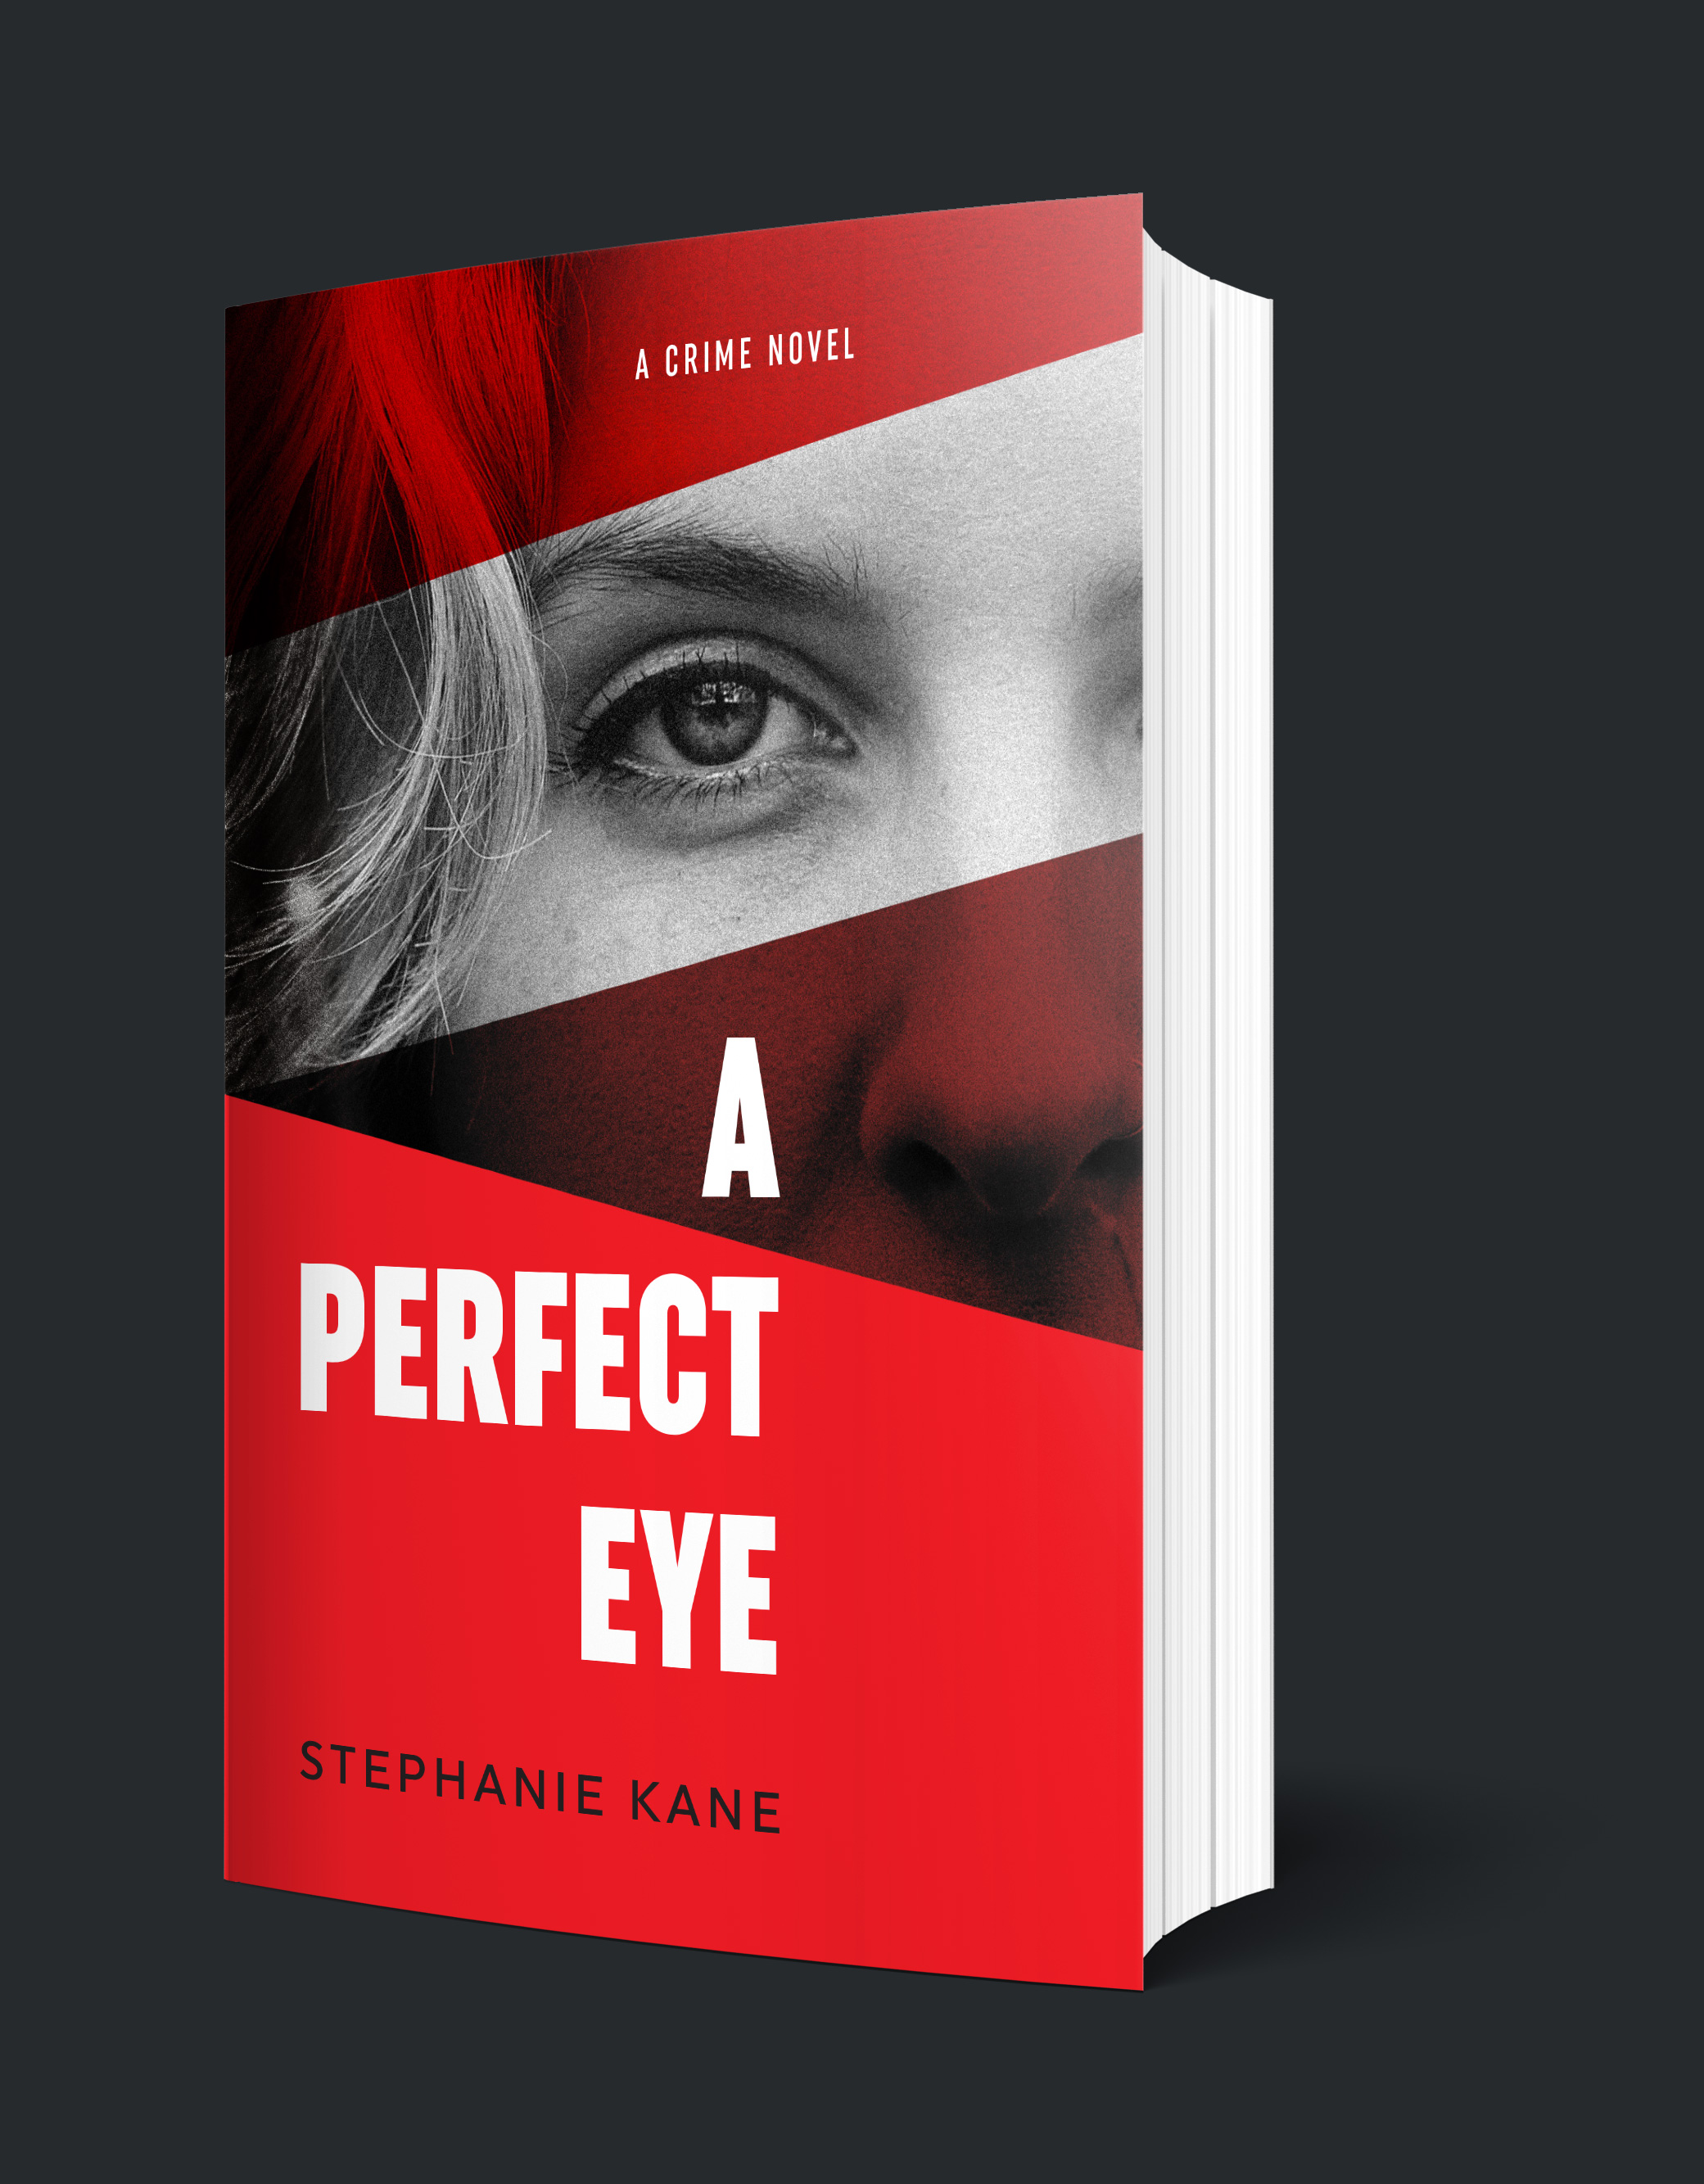 a-perfect-eye_cover_stephanie-kane.jpg